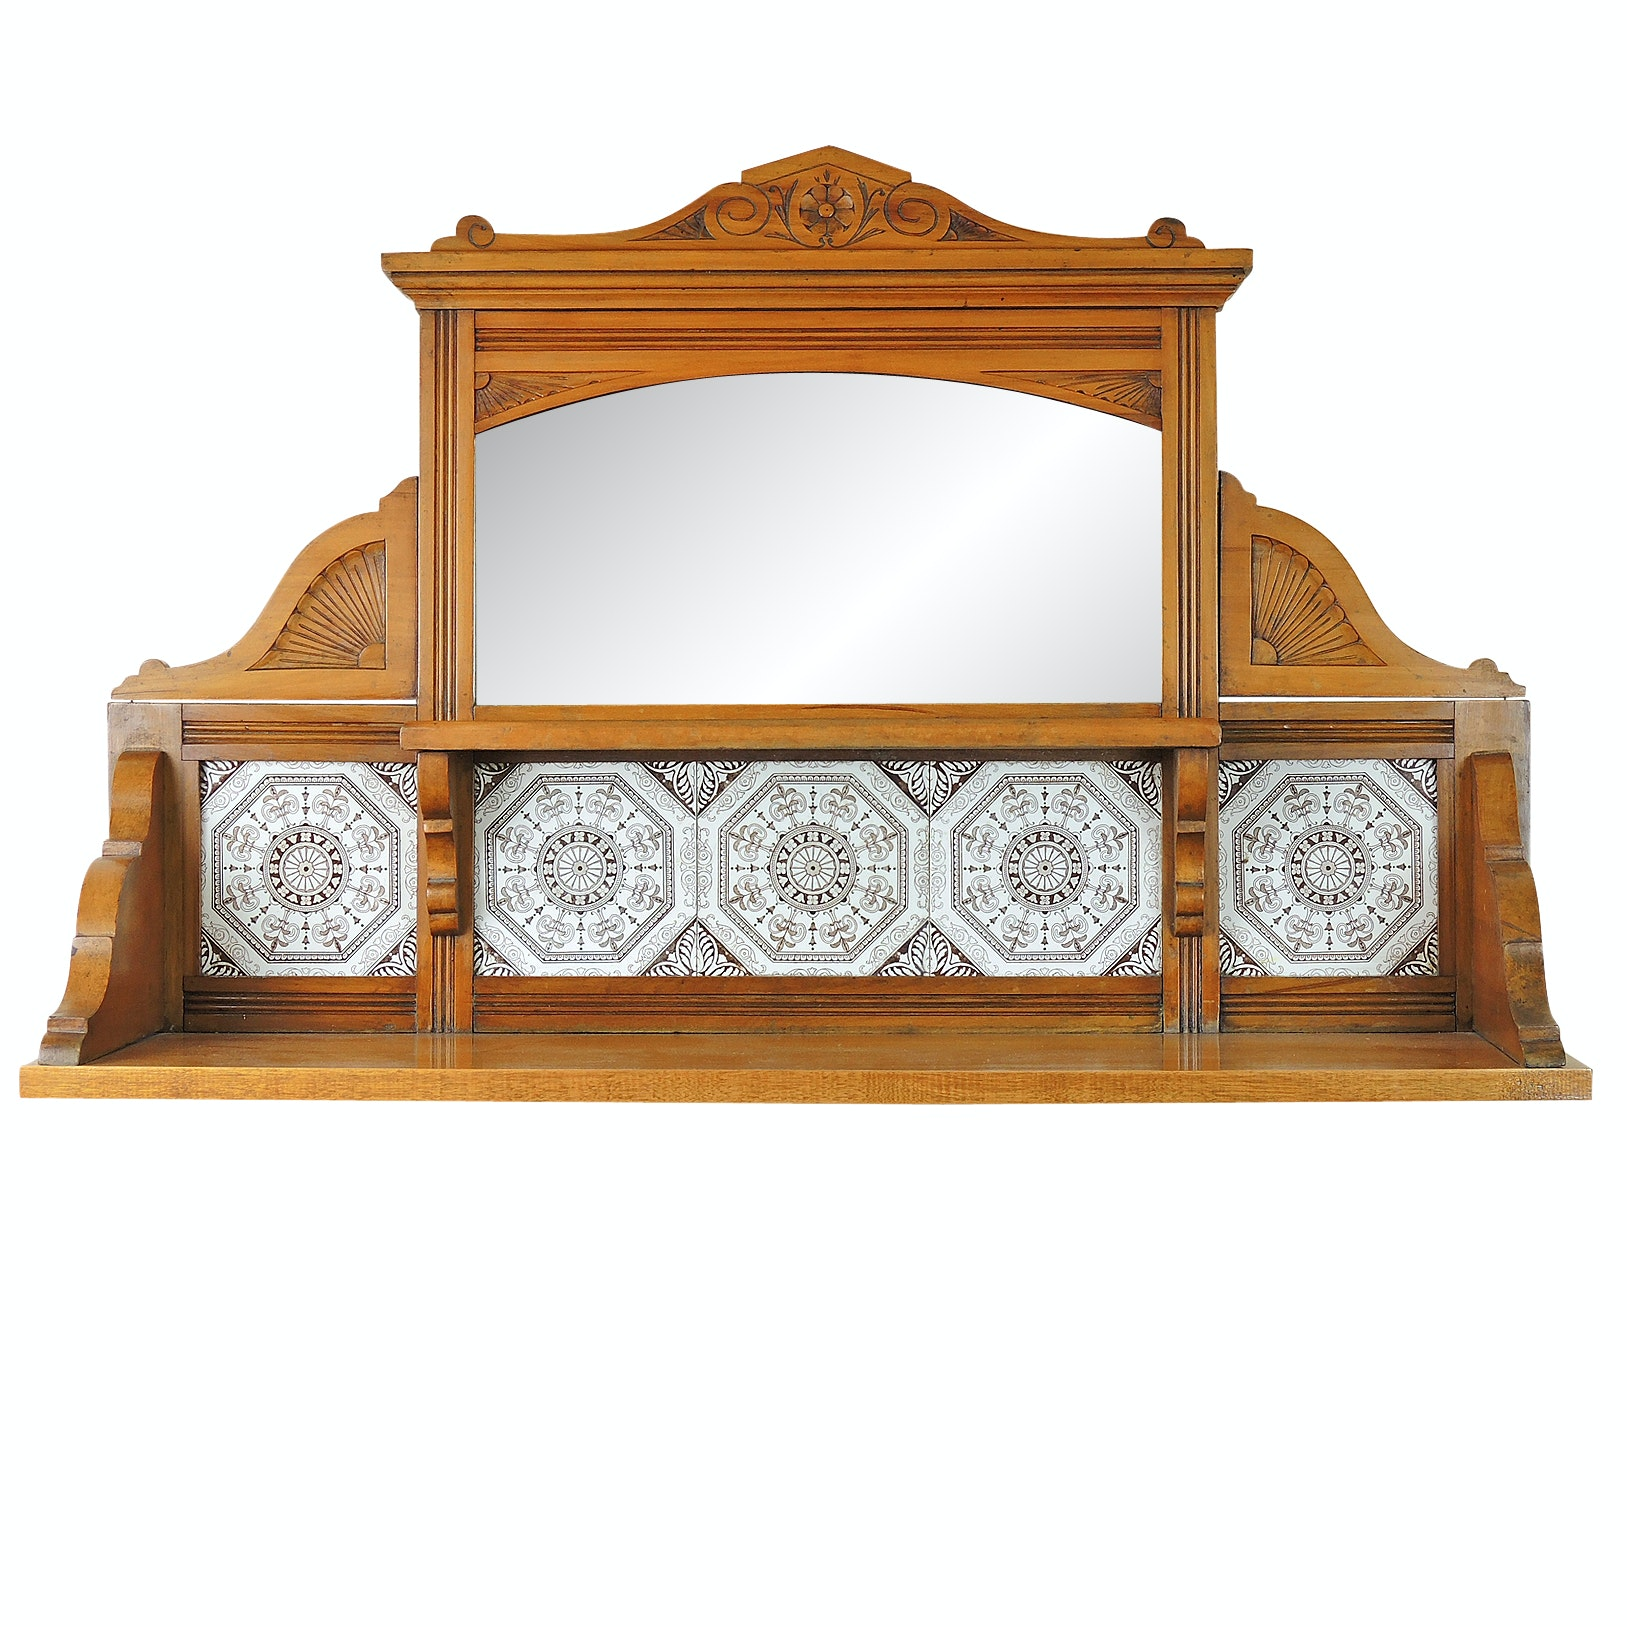 Eastlake Style Mirrored Wall Shelf with Tile Inserts